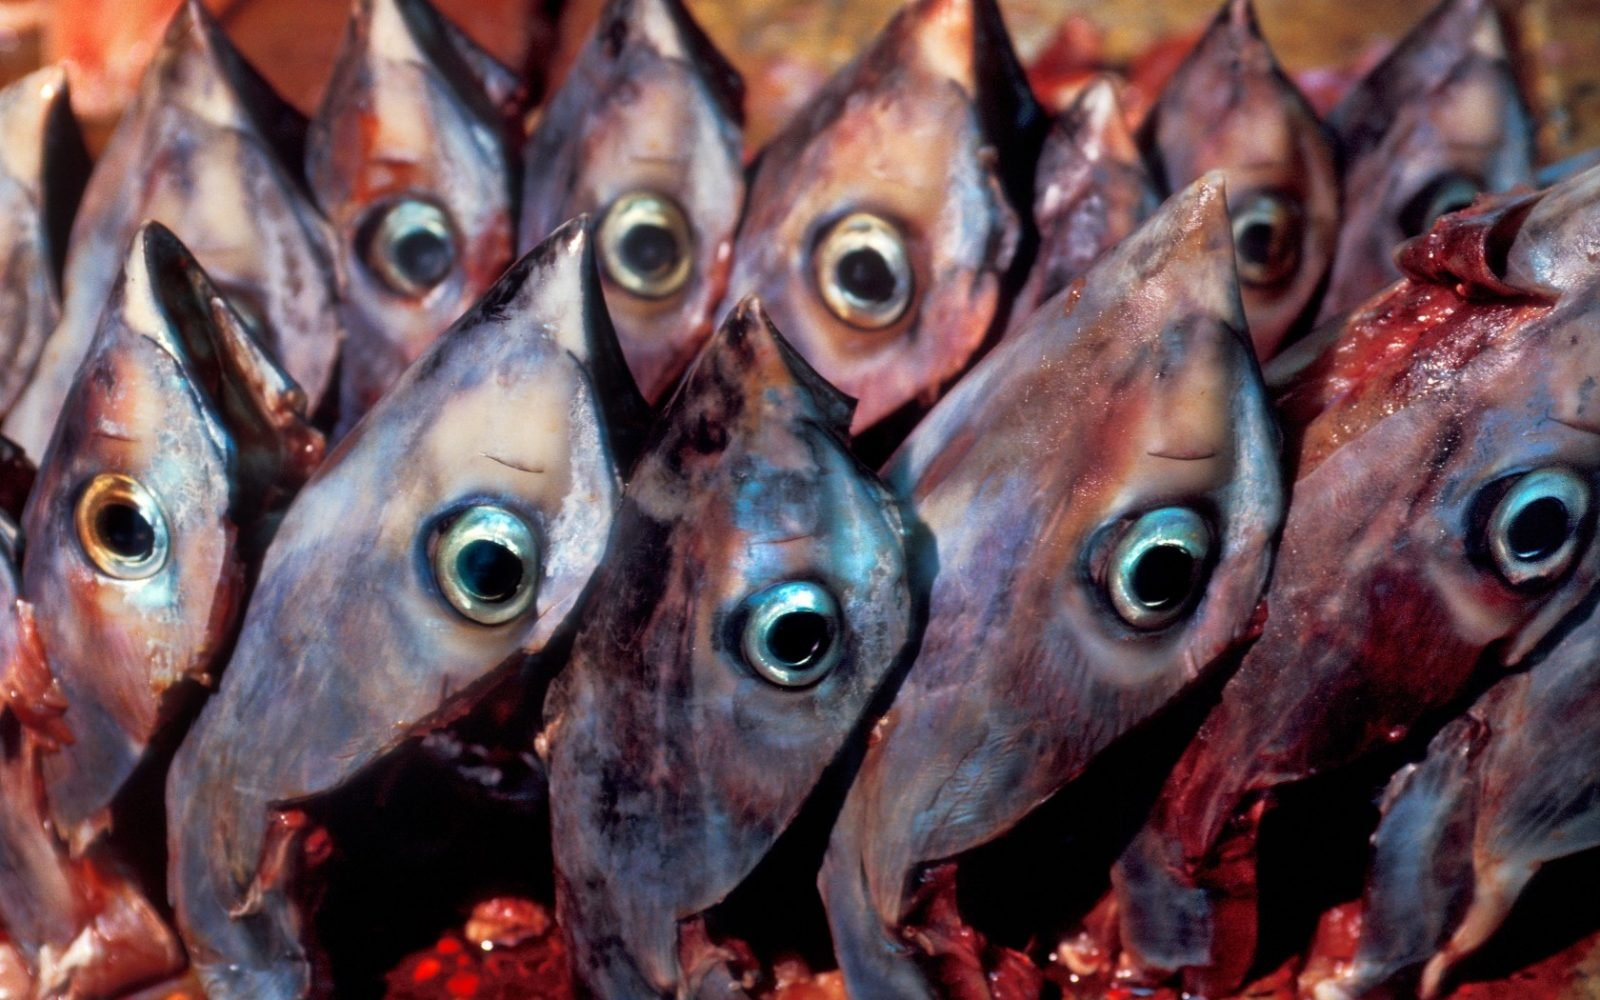 Weird Food - Scary Food 4 Tuna Eyeballs